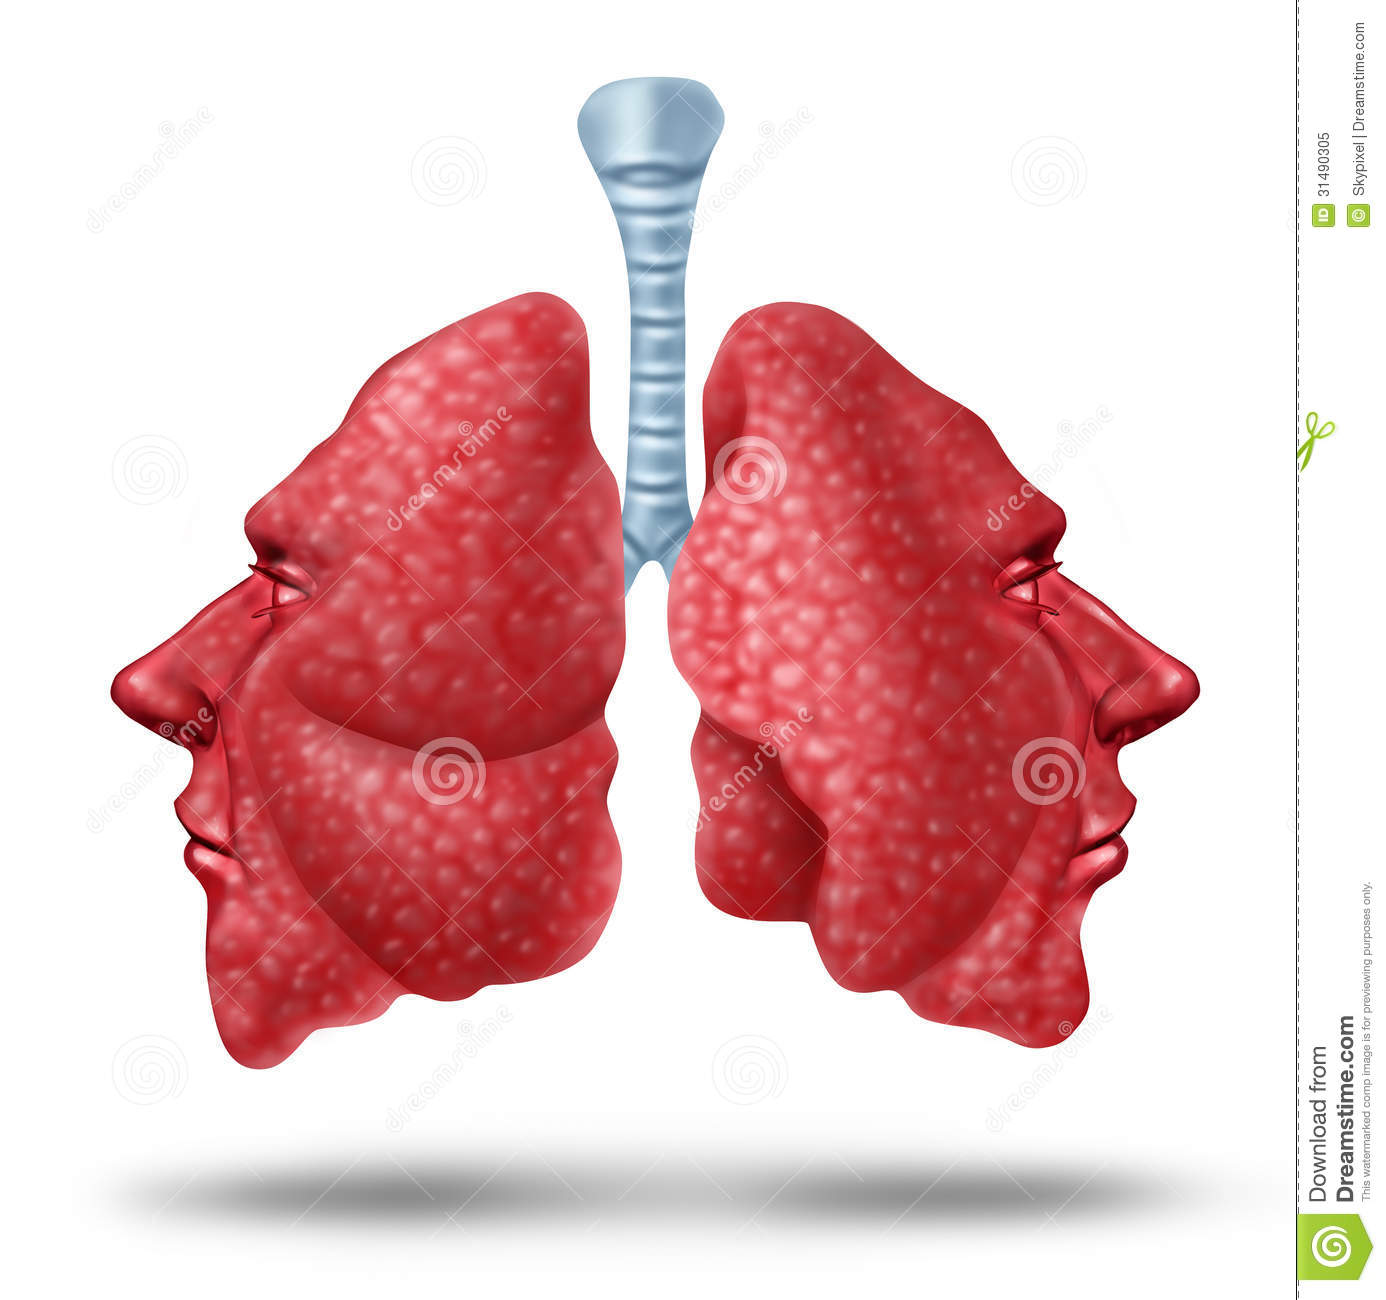 Royalty Free Stock Photo Understanding Lung Health Human Lungs Concept Two Sides Inner Breathing Organ Shaped As Human Heads As Image31490305